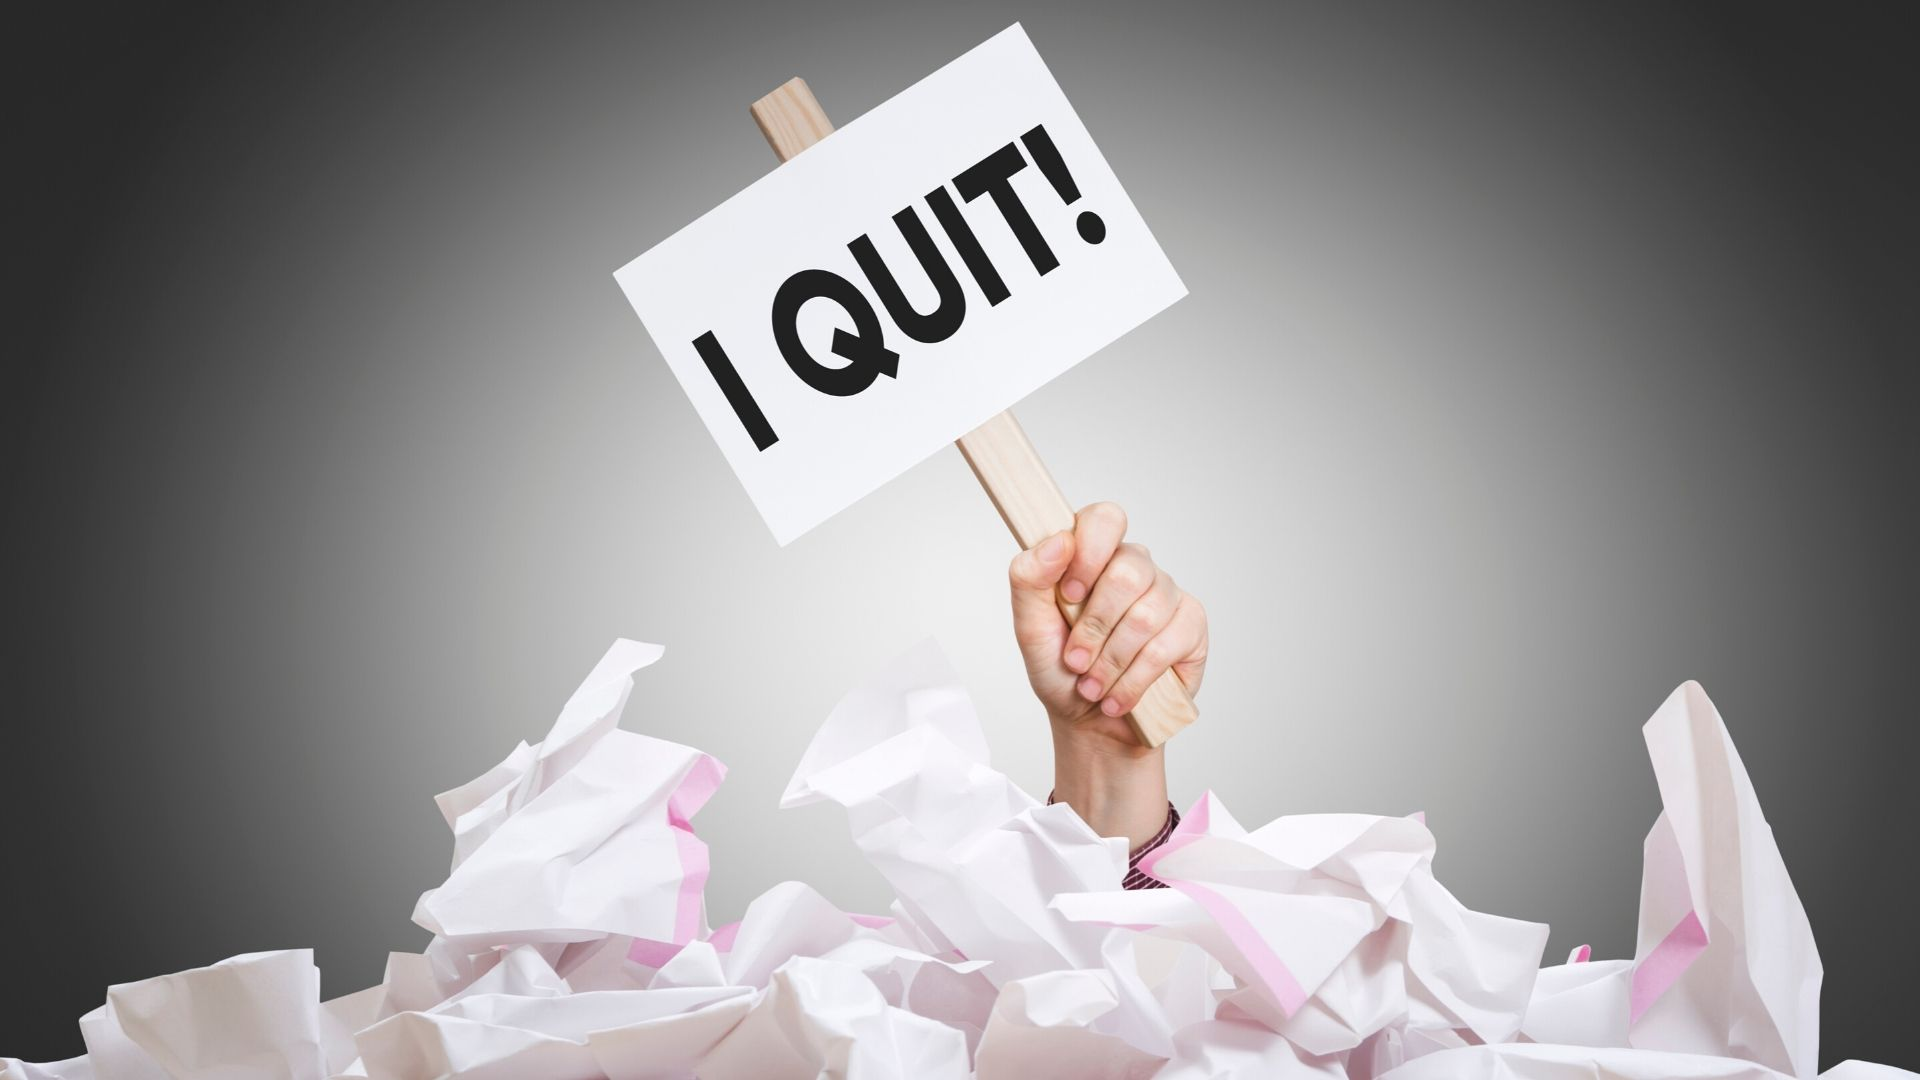 p[lies of srewed up paper with a hand poking out of the top holding a sign that says 'I Quit'